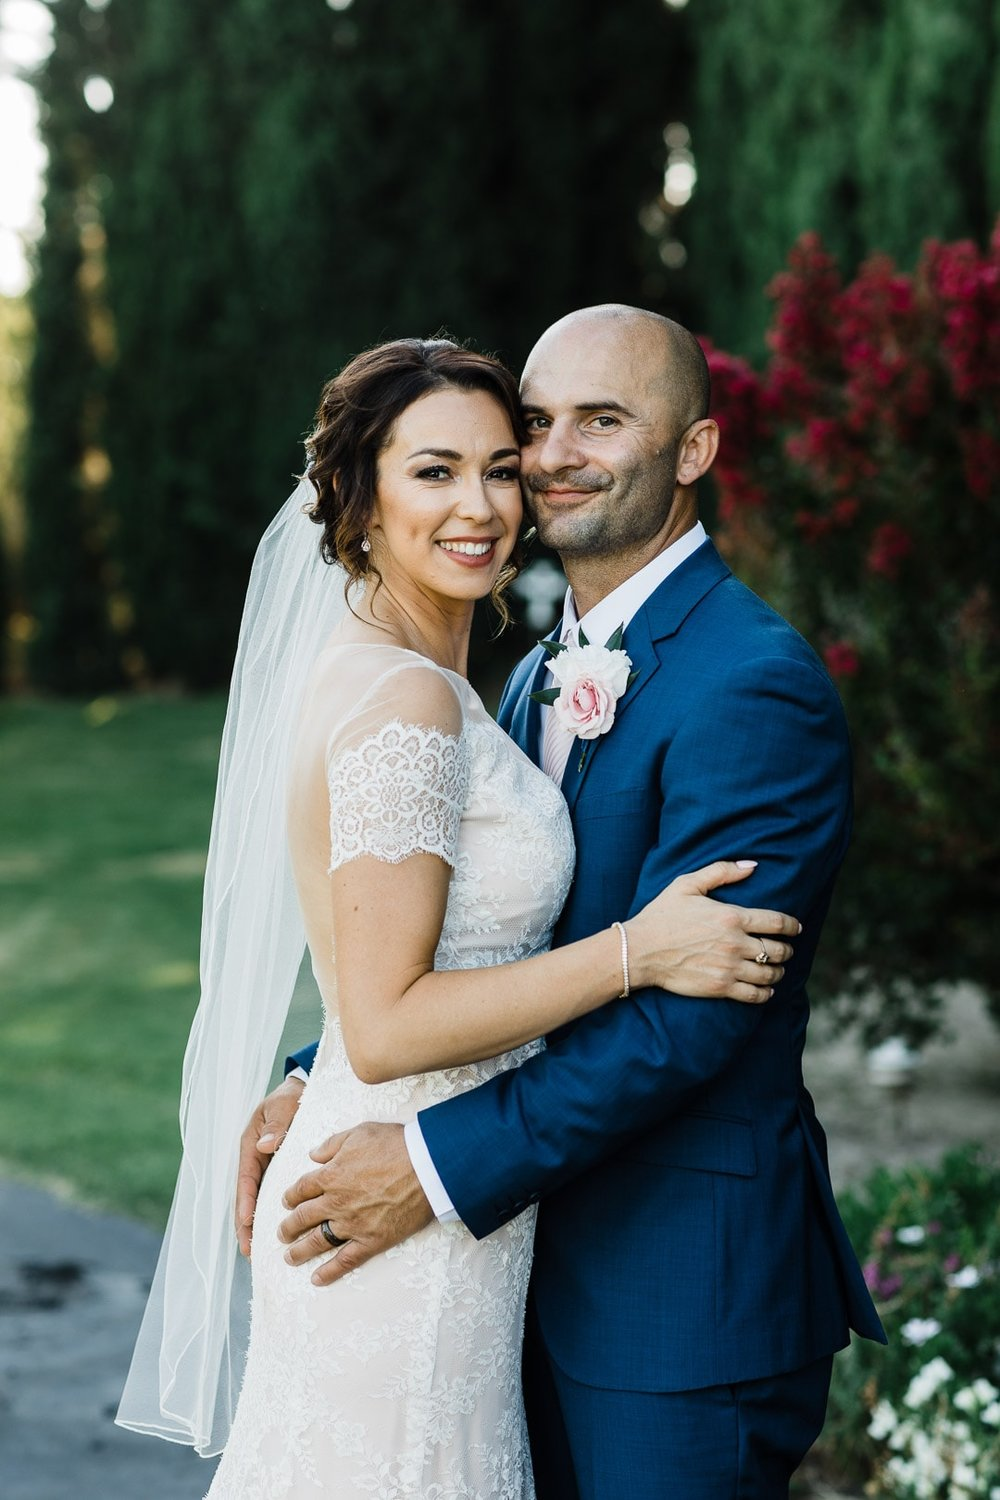 Jamie and John have an epic June summer wedding on one of the hottest days of the year.